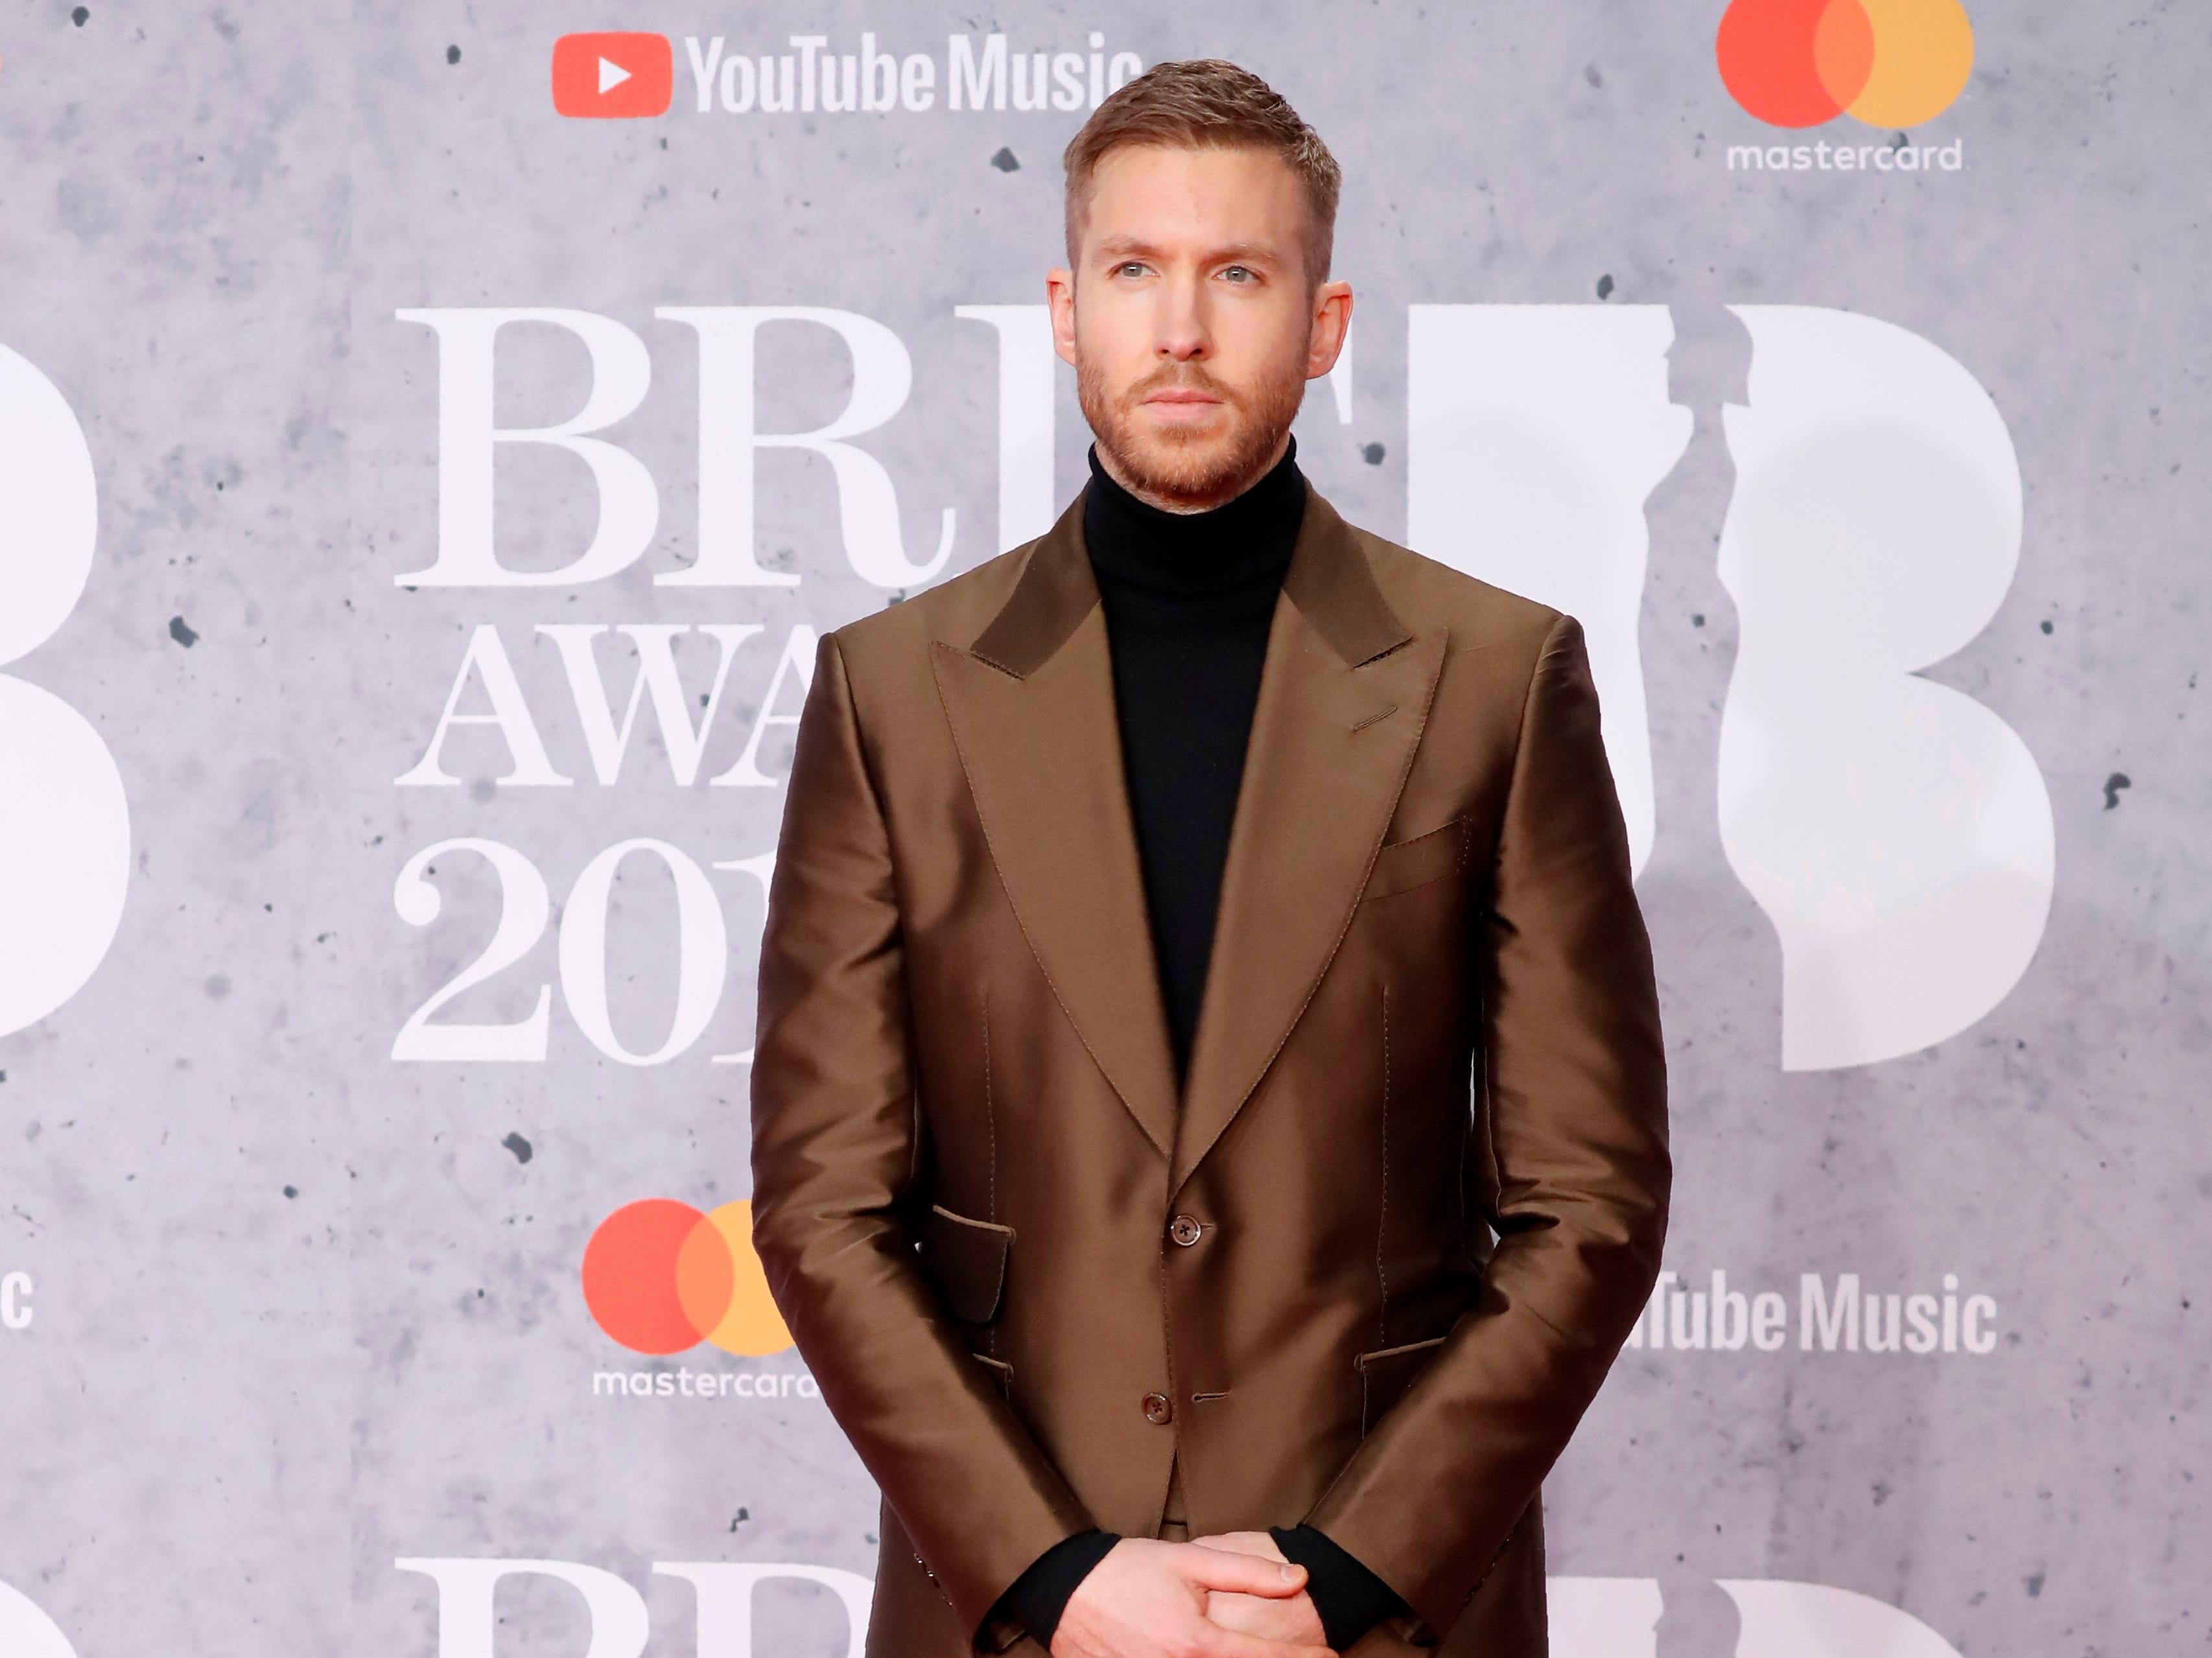 British DJ and musician Calvin Harris poses on the red carpet on arrival for the BRIT Awards 2019 in London on February 20, 2019. (Photo by Tolga AKMEN / AFP) / RESTRICTED TO EDITORIAL USE  NO POSTERS  NO MERCHANDISE NO USE IN PUBLICATIONS DEVOTED TO ARTISTSTOLGA AKMEN/AFP/Getty Images ORIG FILE ID: AFP_1DO1DB